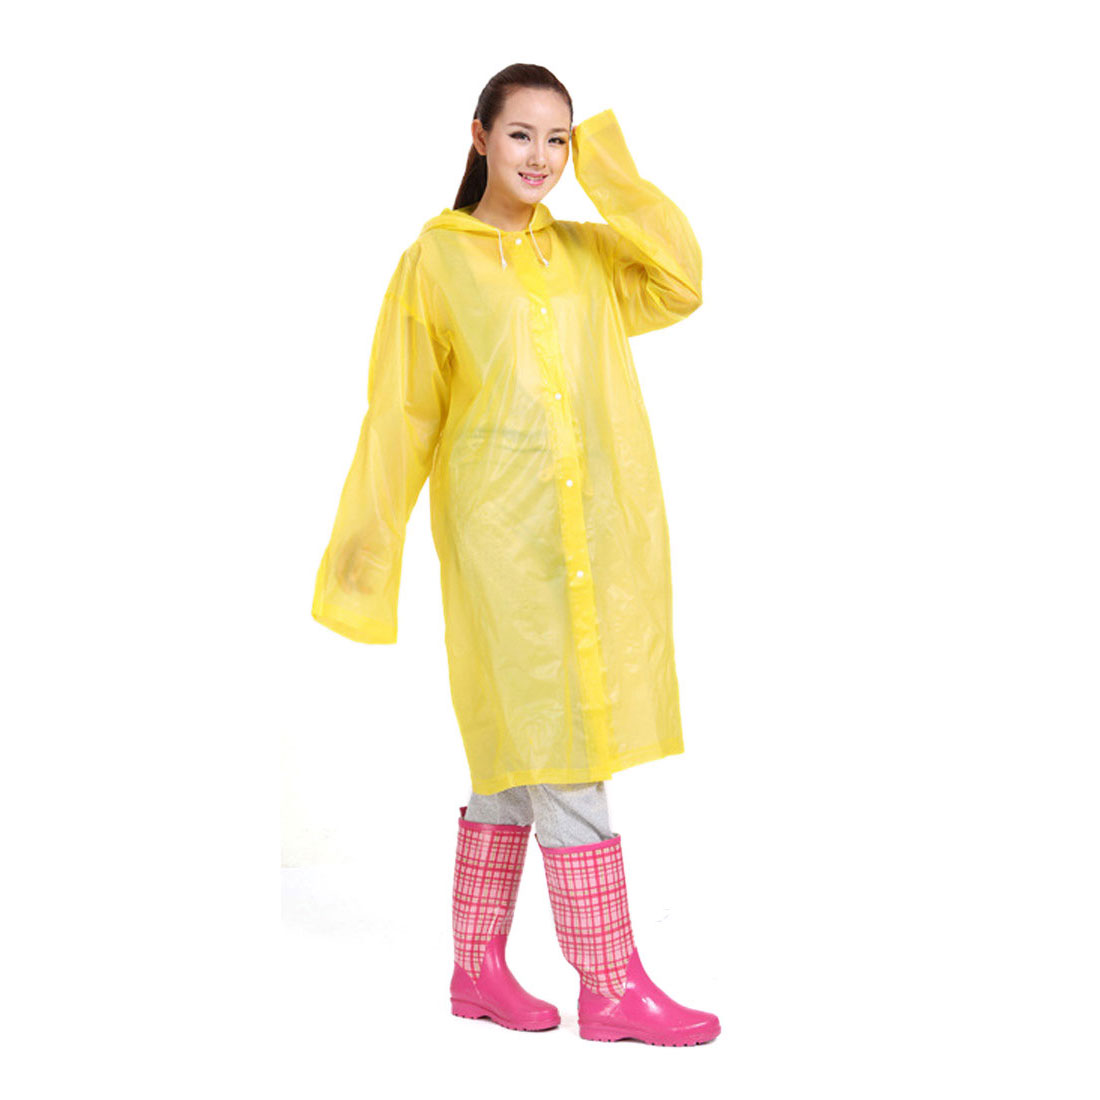 L Yellow Portable EVA Waterproof Adult Raincoat Hooded Rain Poncho for Bicycle